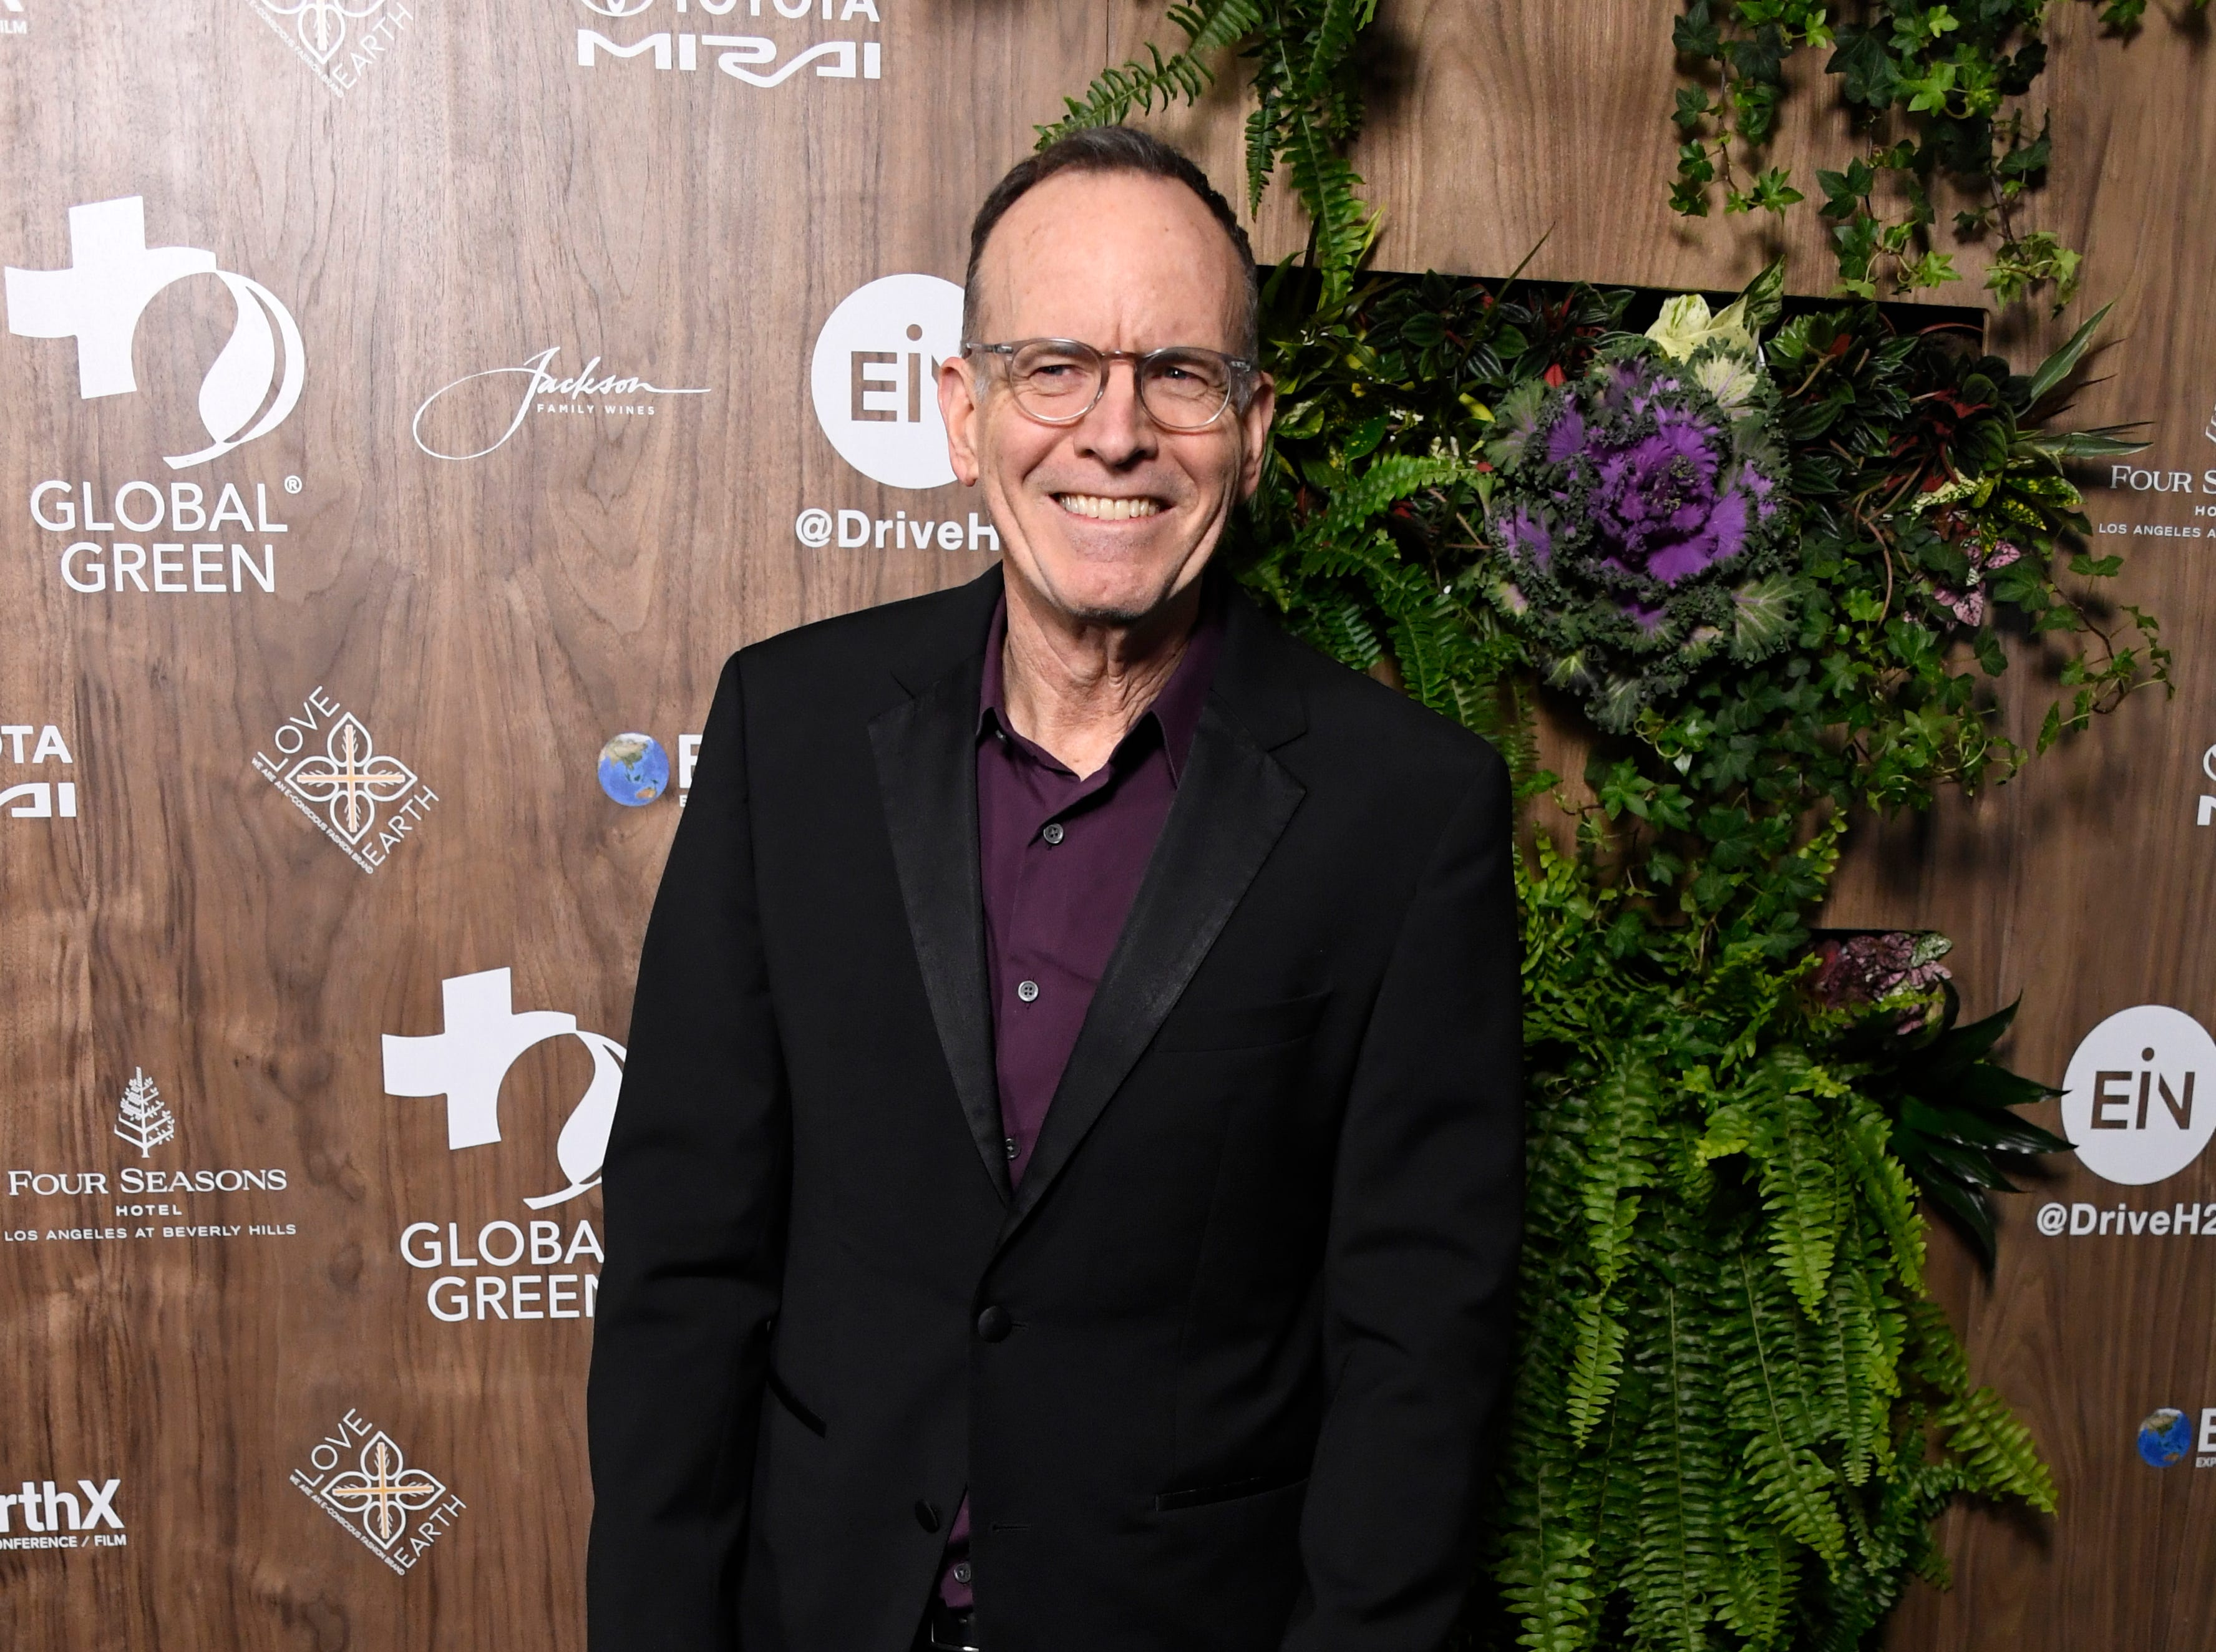 LOS ANGELES, CALIFORNIA - FEBRUARY 20: Jon Murray attends the Global Green 2019 Pre-Oscar Gala  at Four Seasons Hotel Los Angeles at Beverly Hills on February 20, 2019 in Los Angeles, California. (Photo by Frazer Harrison/Getty Images) ORG XMIT: 775298110 ORIG FILE ID: 1131075991